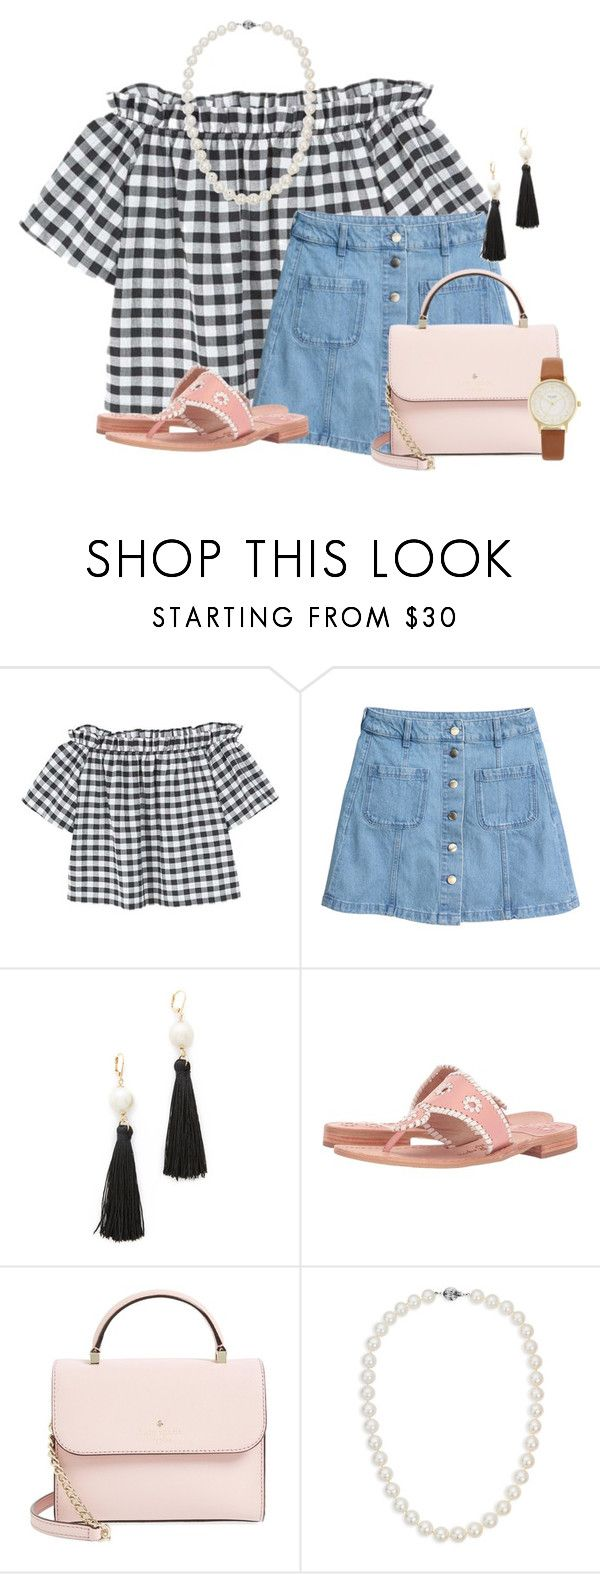 """""""Inspired by Belle of the Ball:)"""" by flroasburn ❤ liked on Polyvore featuring MANGO, H&M, Kate Spade, Jack Rogers and Blue Nile"""